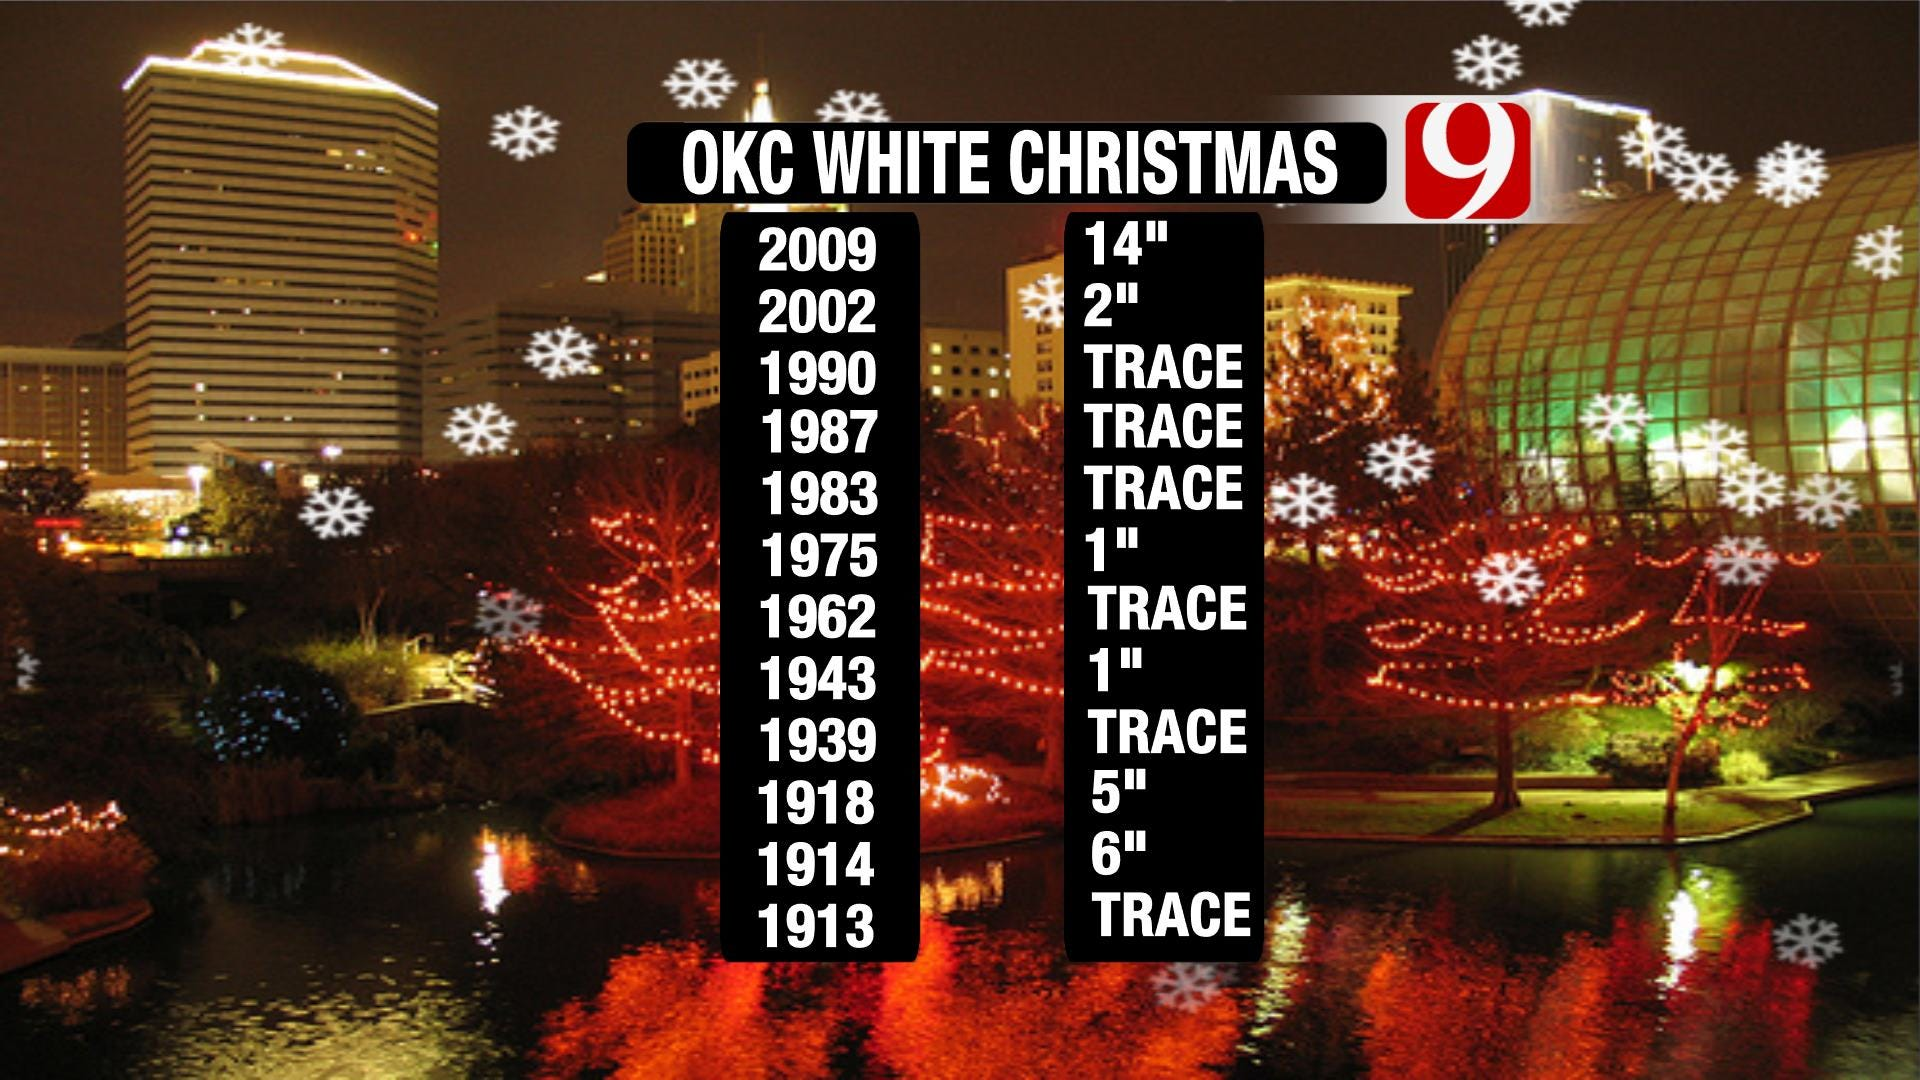 Oklahoma City's White Christmases